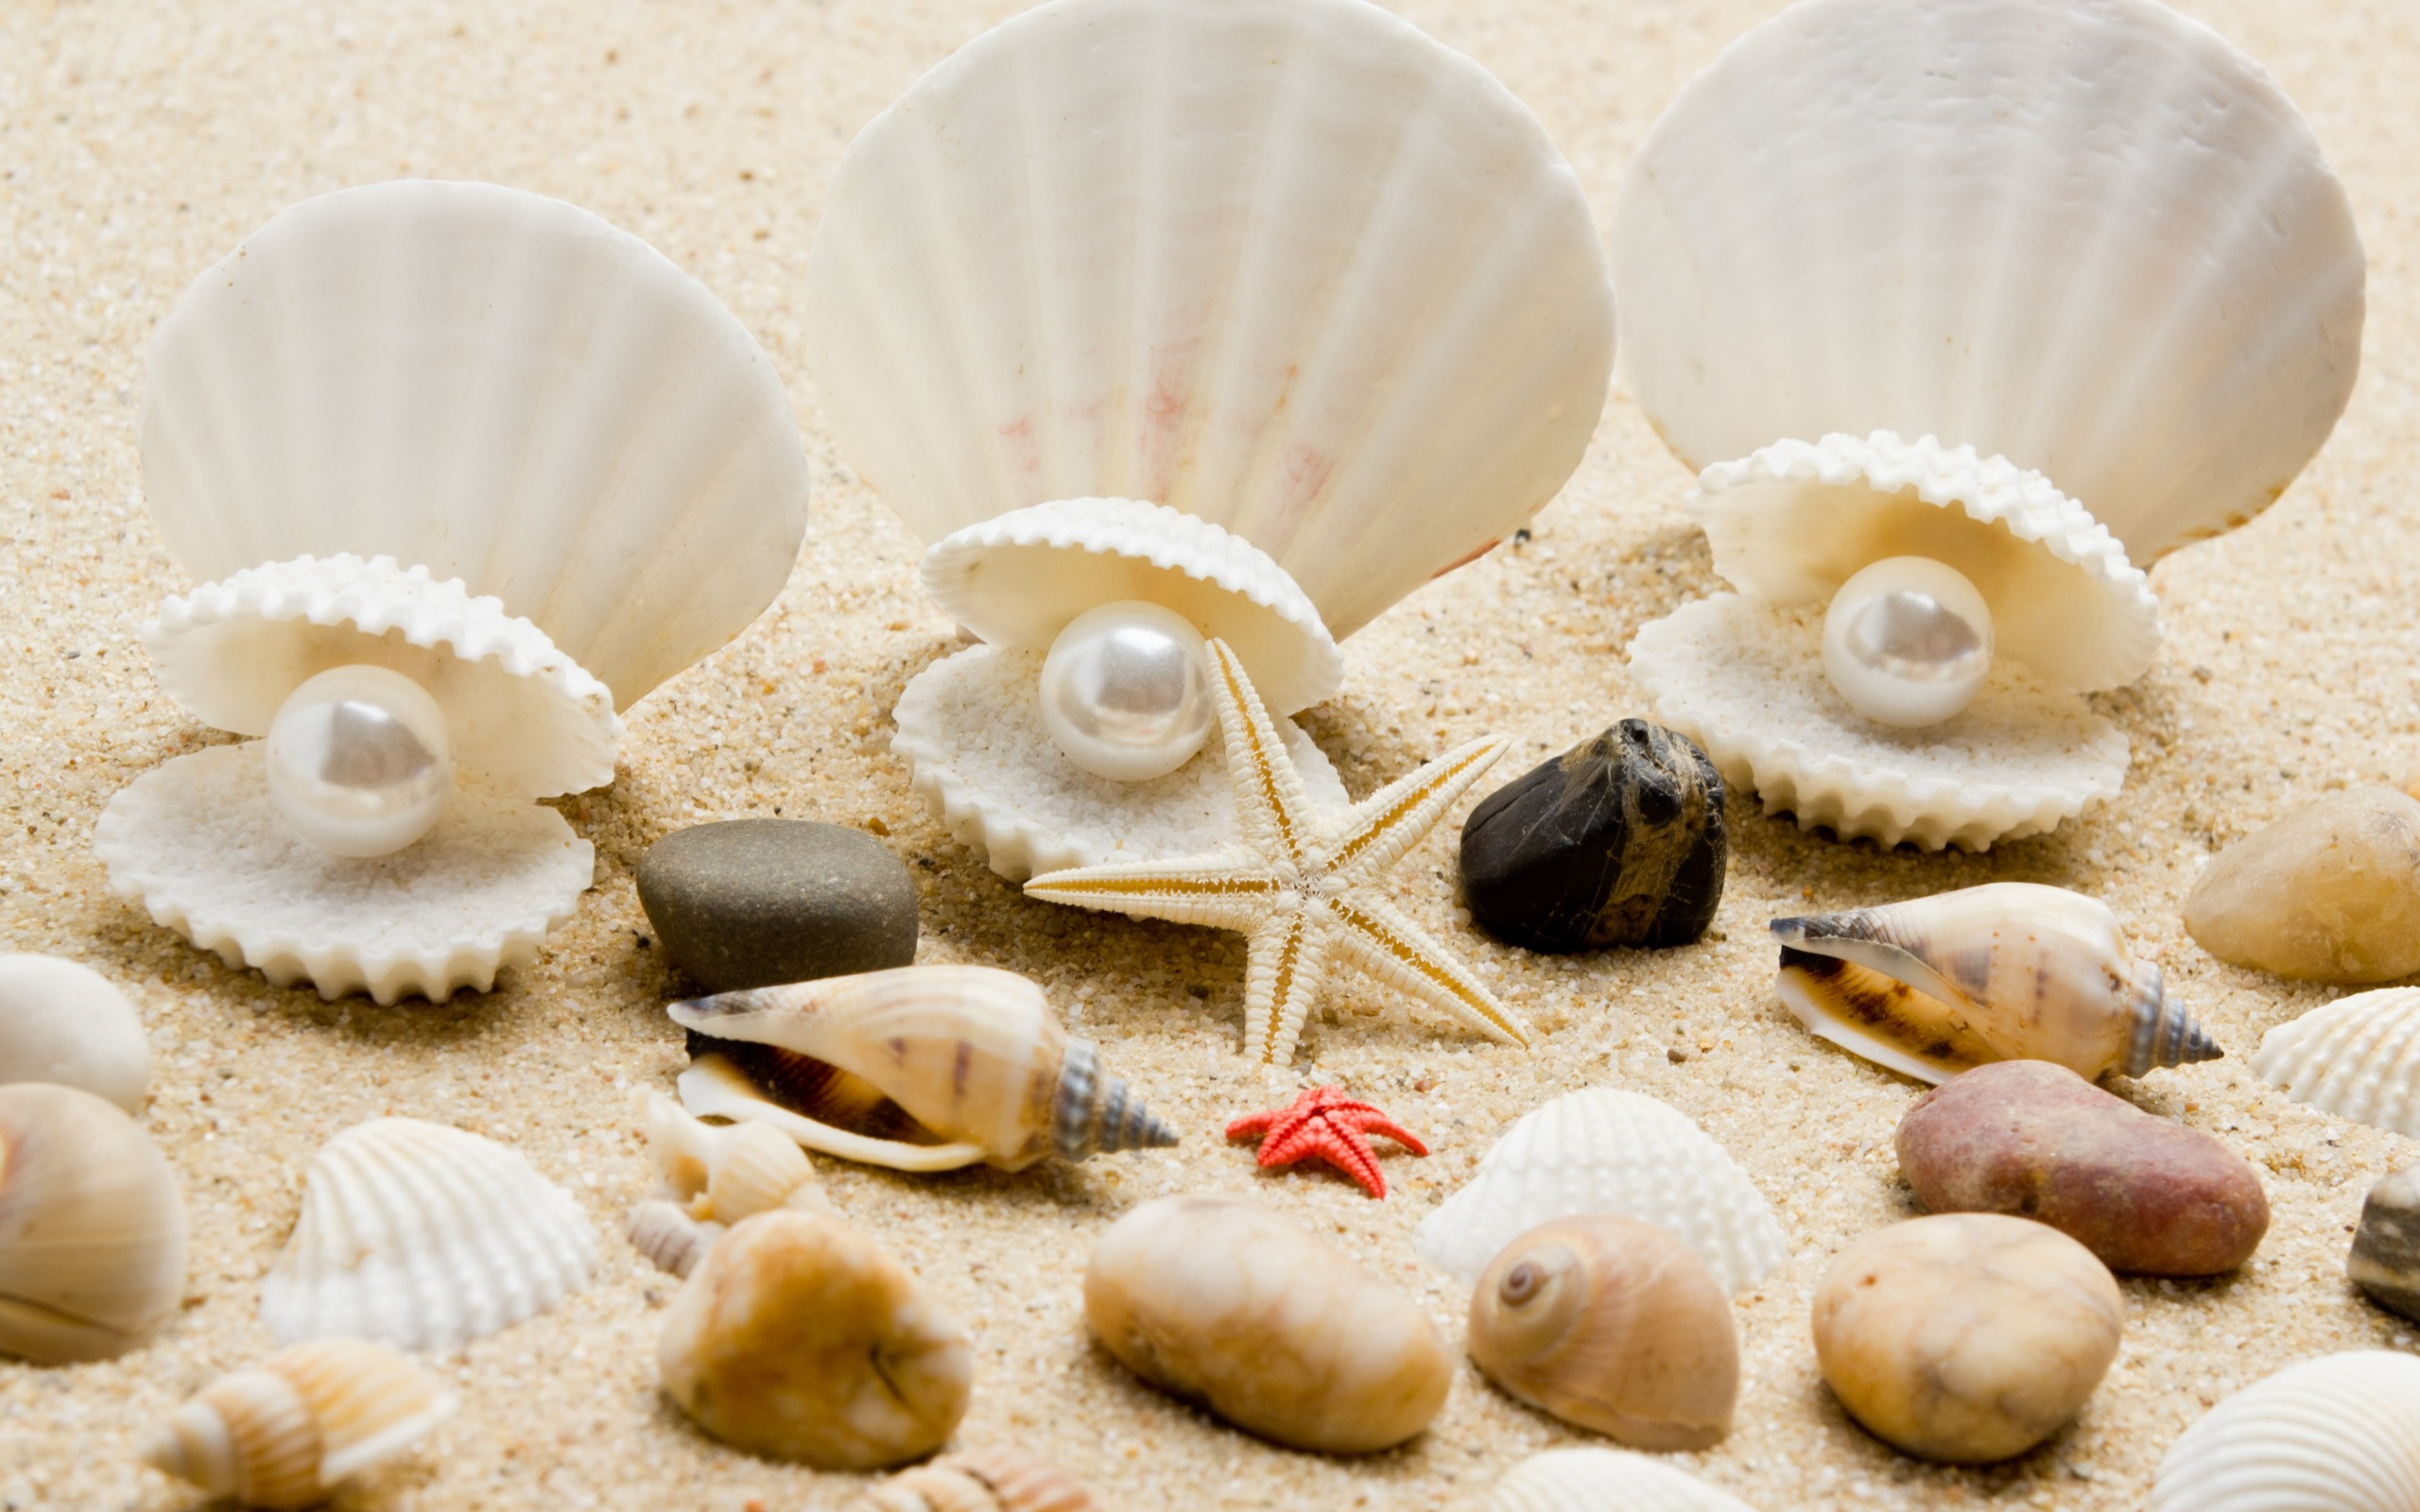 4K Shell With Pearl Wallpapers High Quality | Download Free